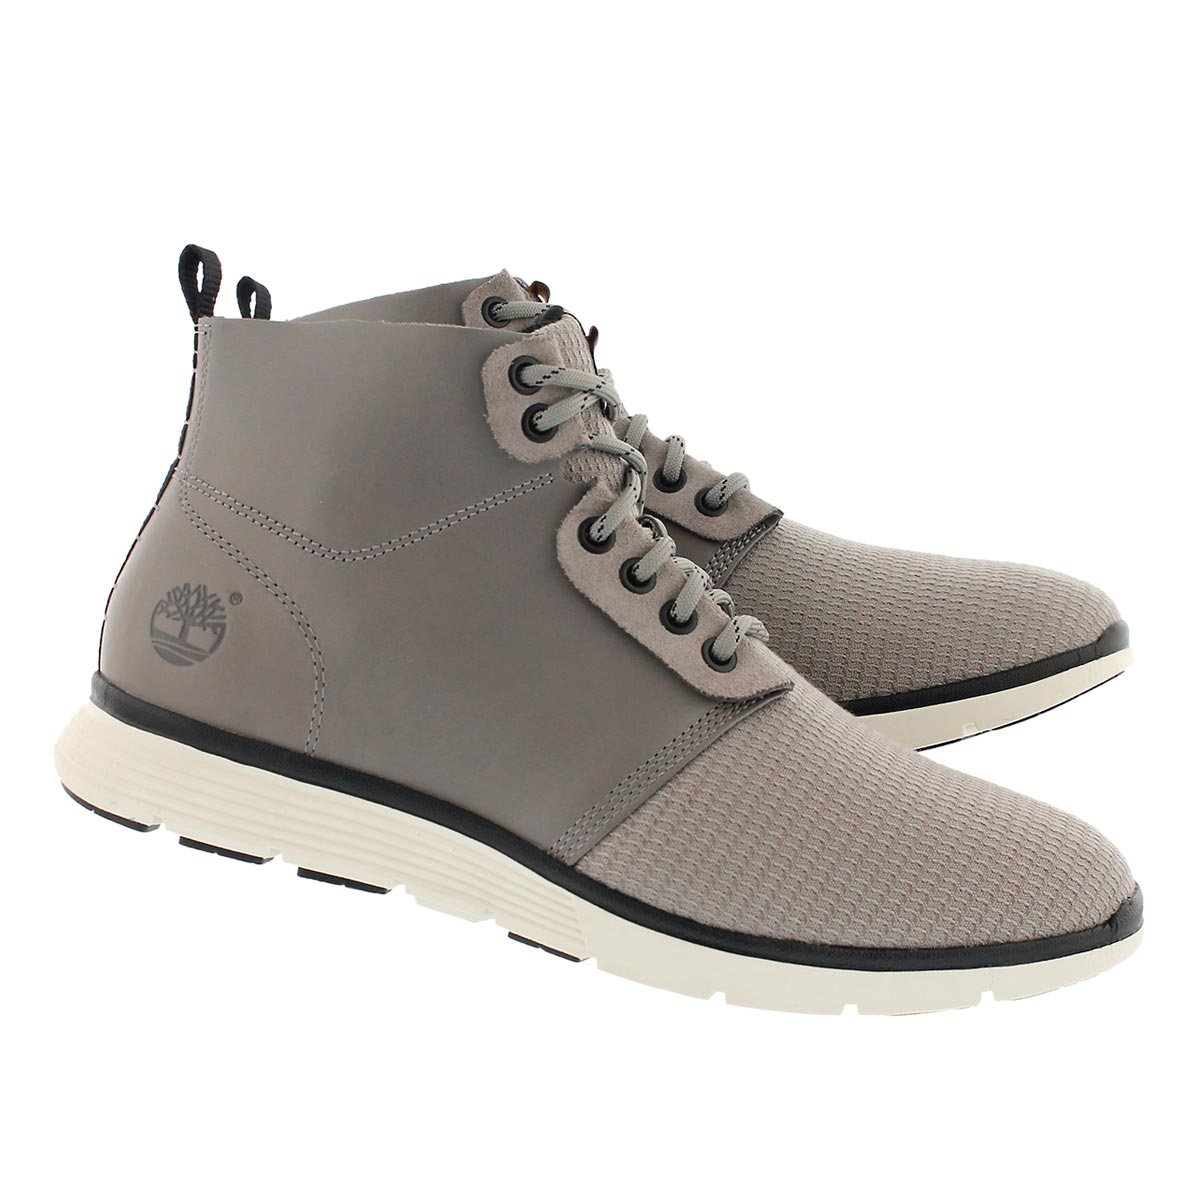 Mns Killington grey chukka boot